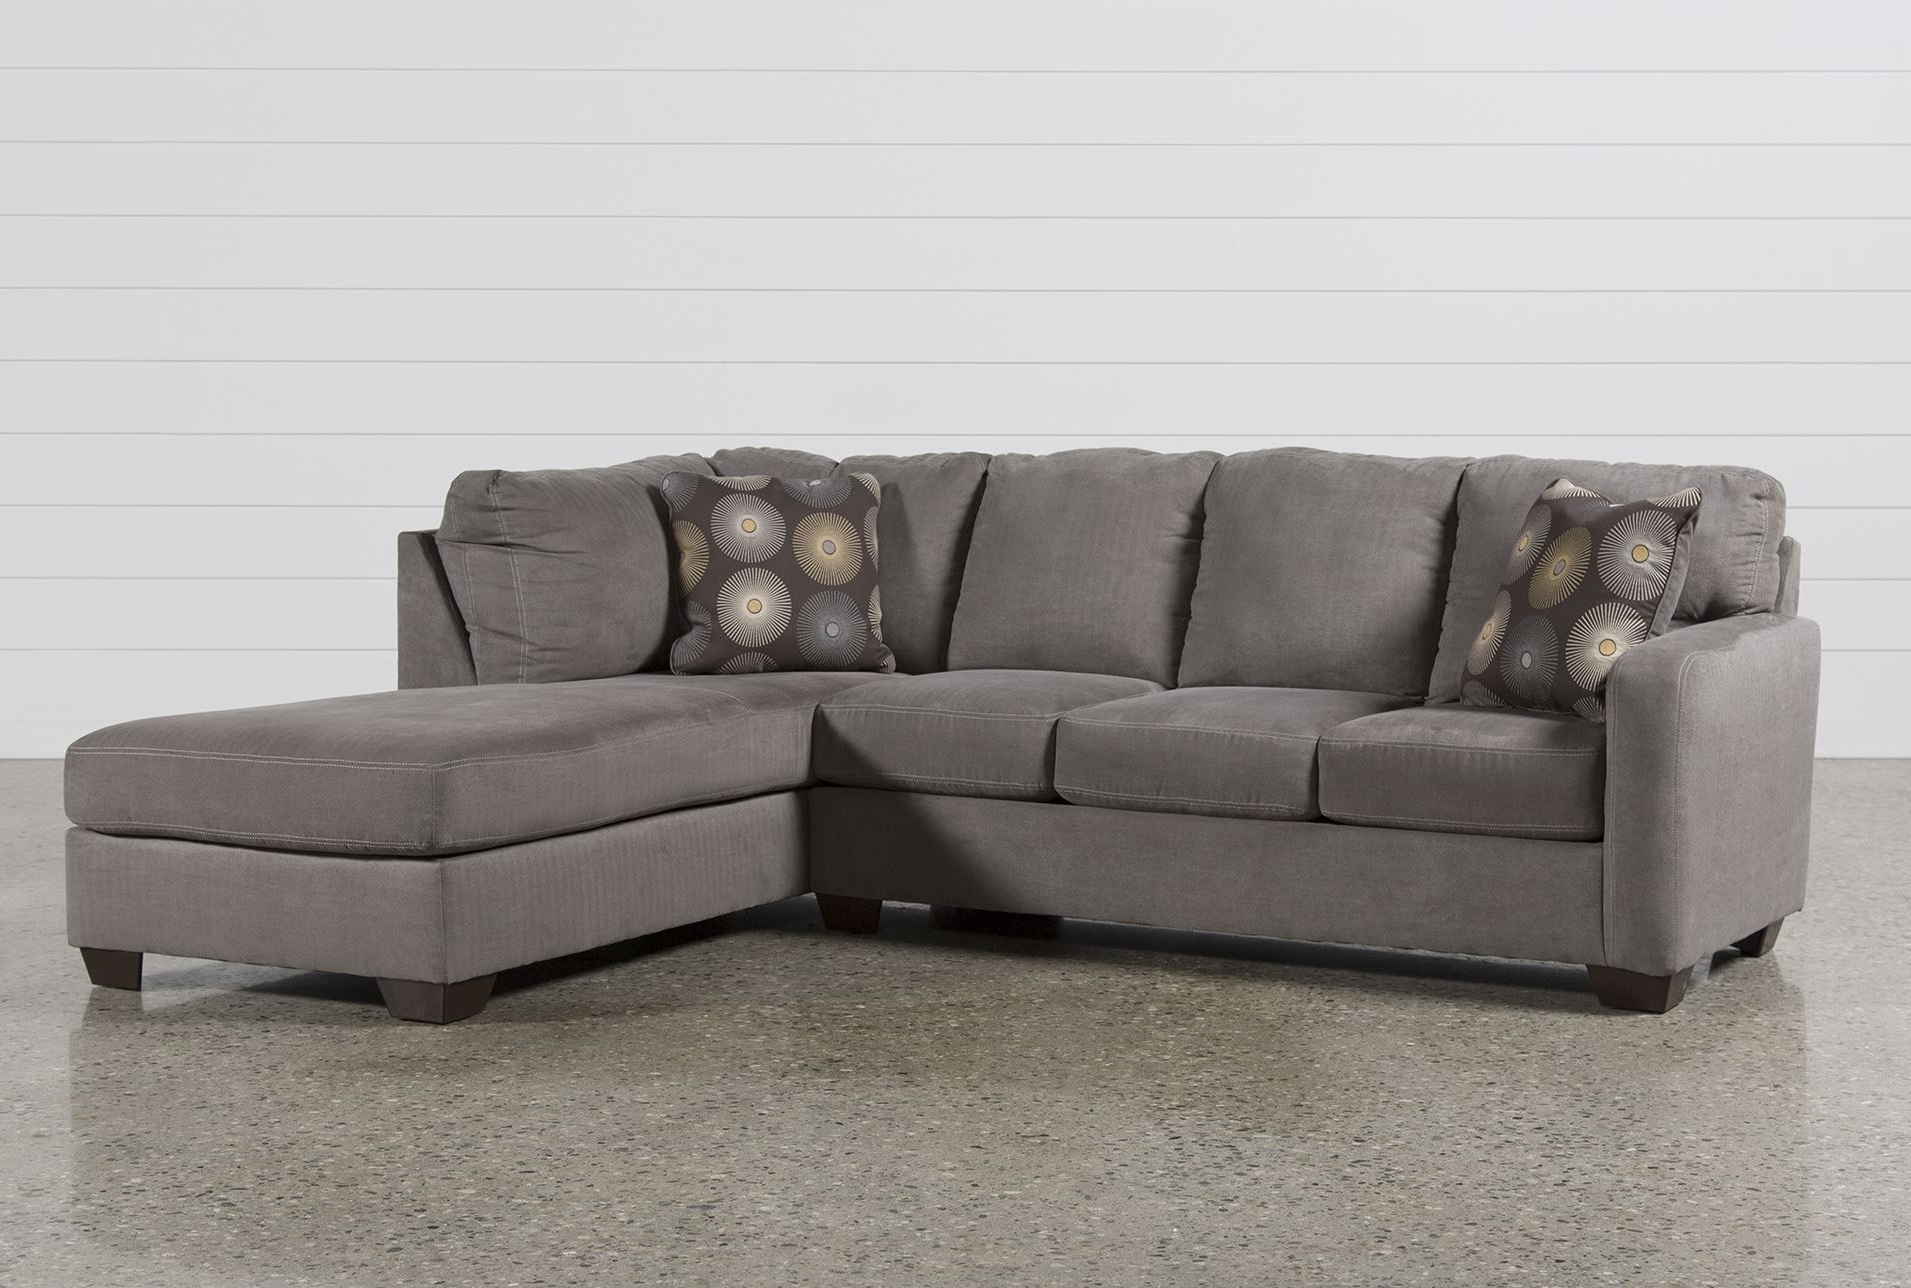 Best 2 Piece Sectional Sofa 23 For Your Living Room Sofa Ideas Throughout Recent 2 Piece Sectional Sofas With Chaise (View 4 of 15)